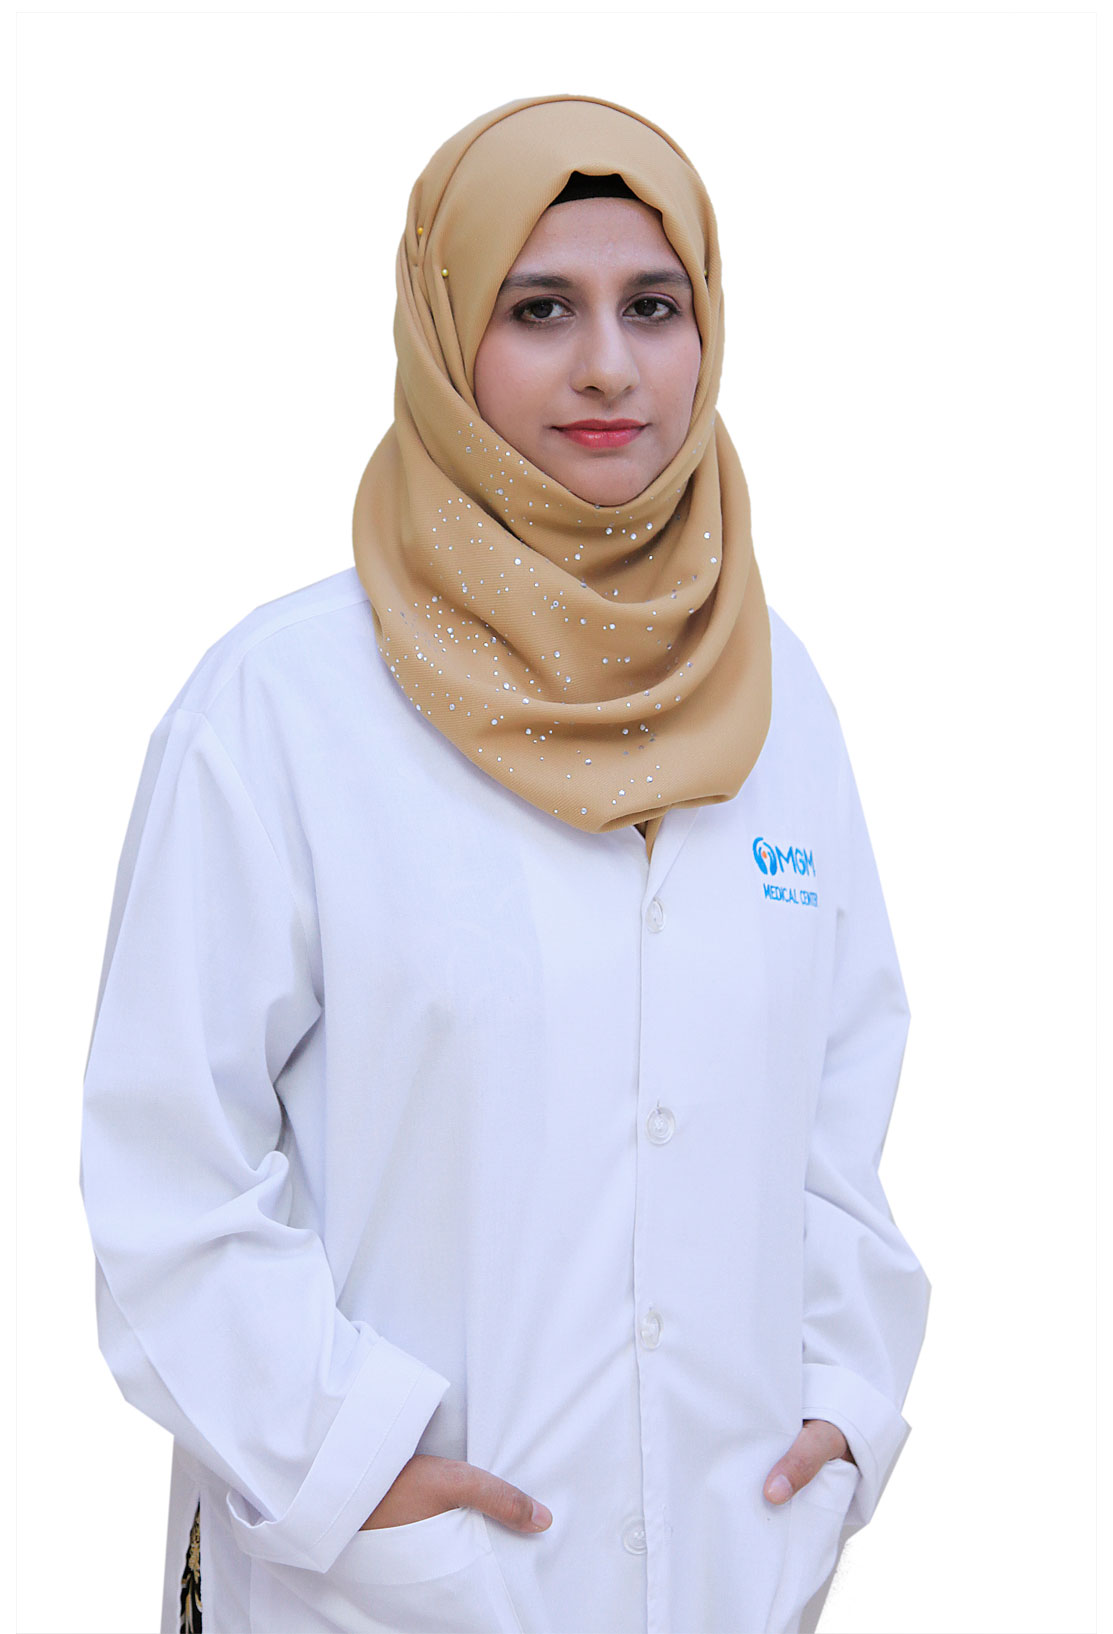 http://mgmmedical.ae/wp-content/uploads/2018/04/Dr-Shaima-Sulaiman-.jpg